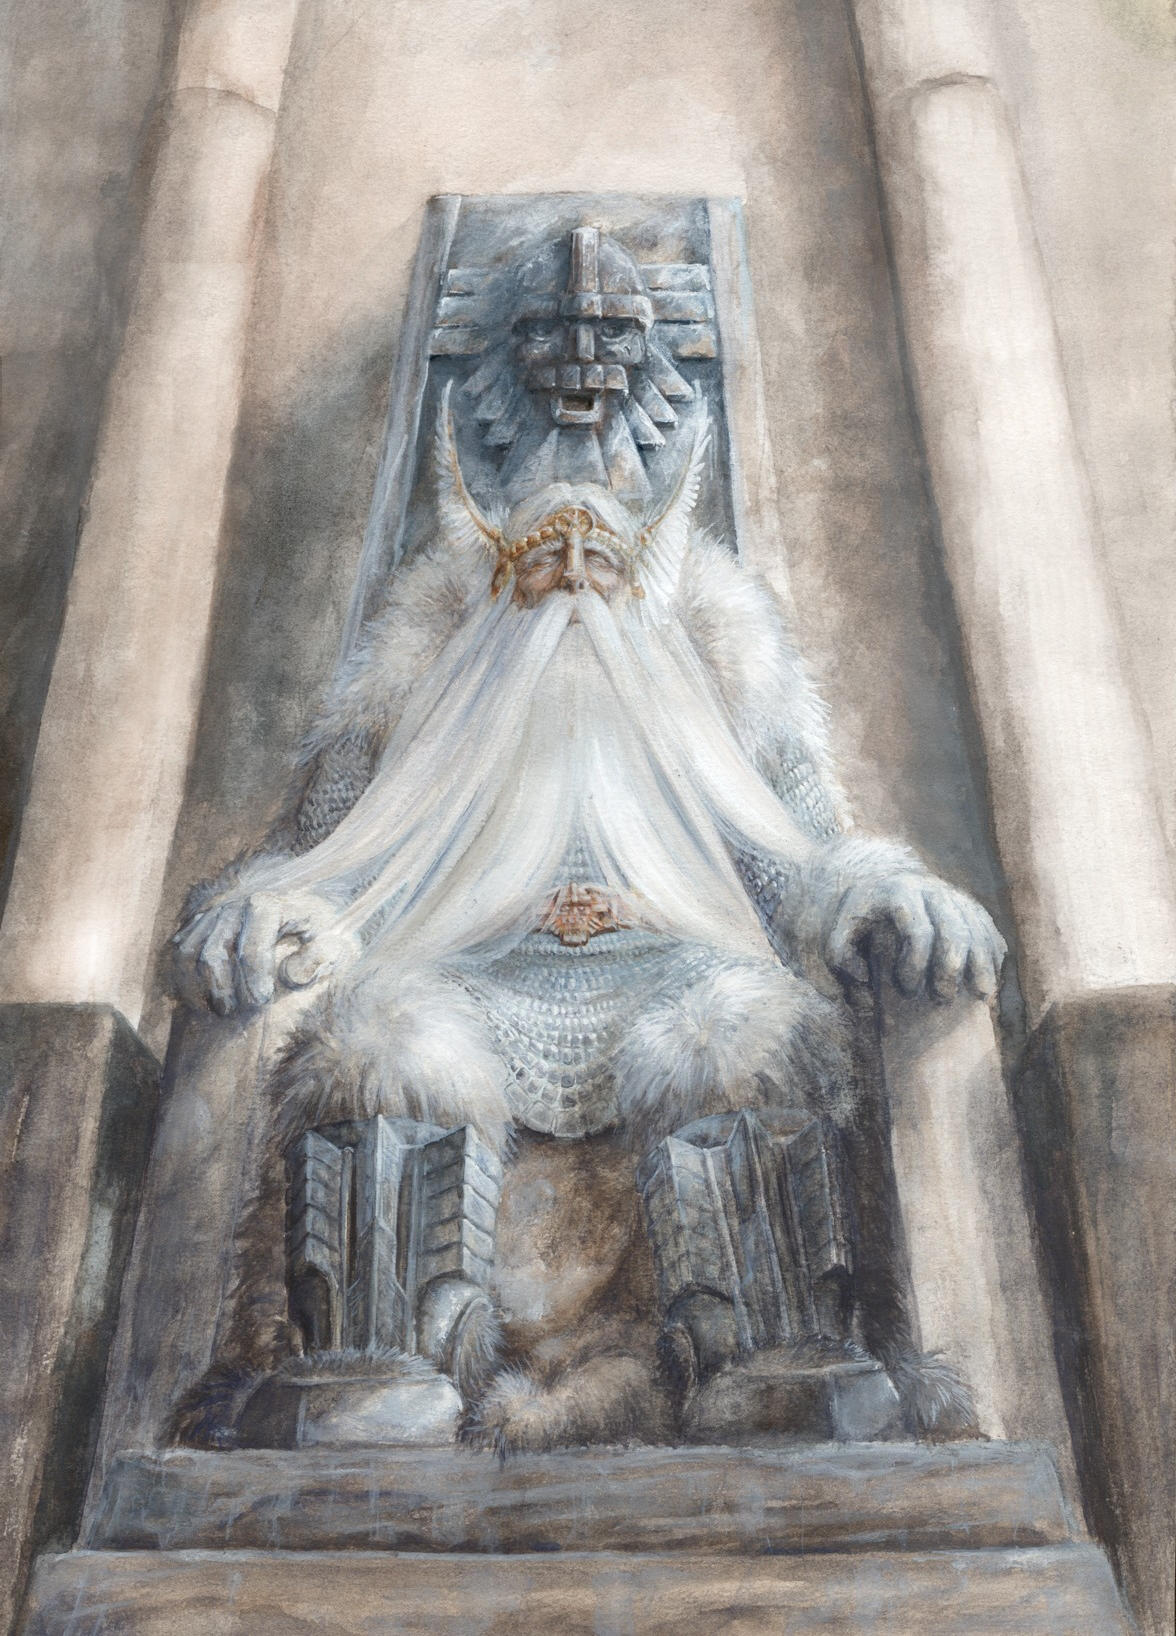 King of Dwarves by MikhailD